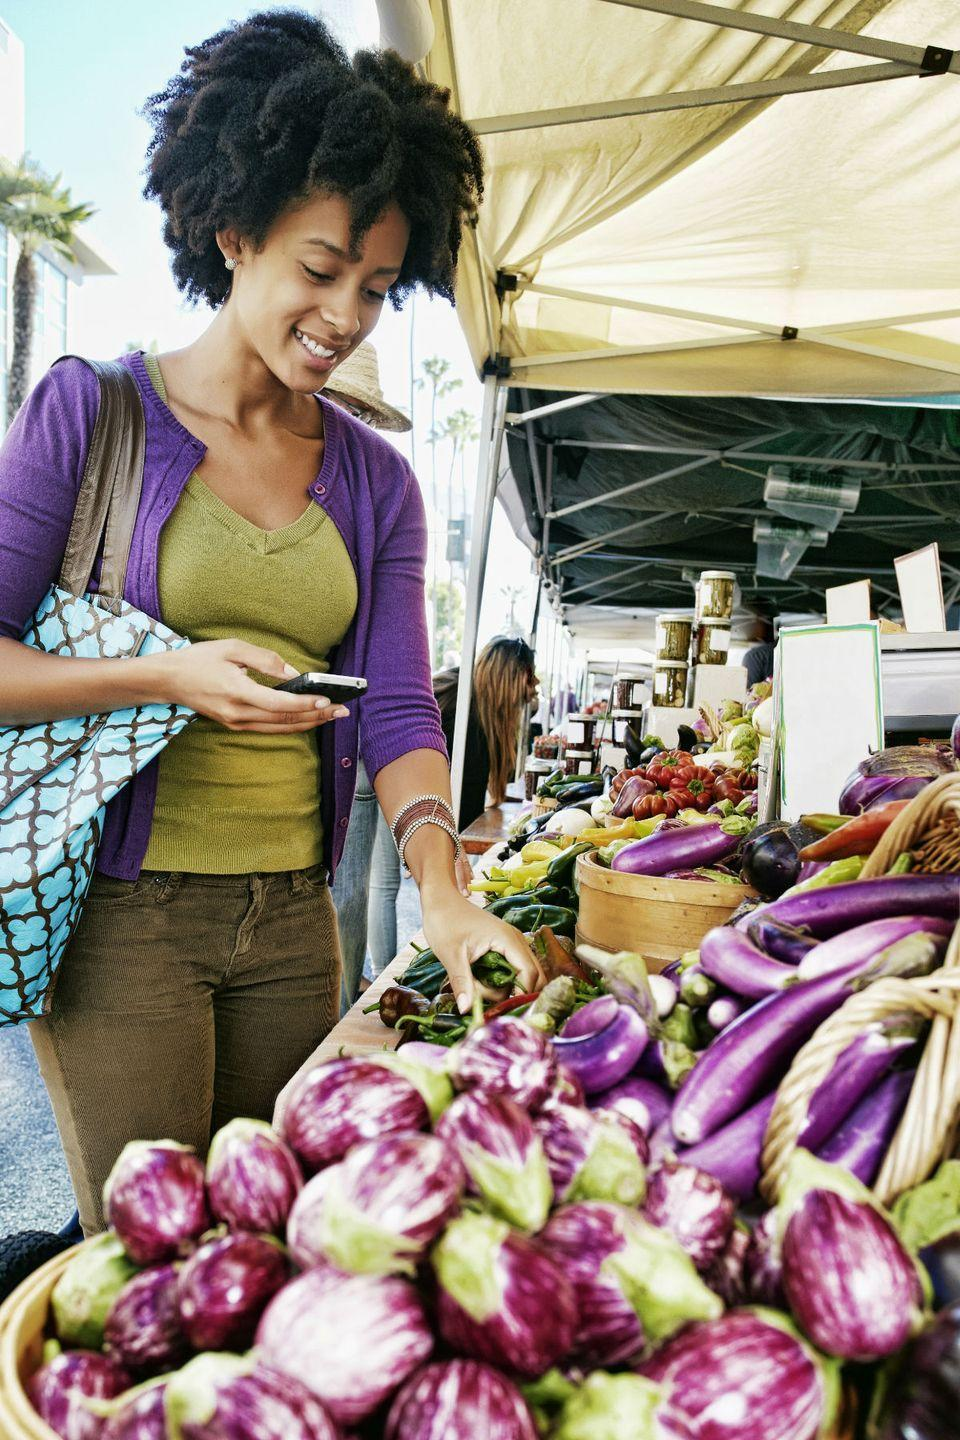 """<p>Get the freshest, in-season produce in your neck of the woods. </p><p><strong>RELATED: </strong><a href=""""https://www.countryliving.com/life/g3510/ways-to-make-the-most-of-the-farmers-market/"""" rel=""""nofollow noopener"""" target=""""_blank"""" data-ylk=""""slk:9 Ways to Shop Like a Pro at the Farmers' Market"""" class=""""link rapid-noclick-resp"""">9 Ways to Shop Like a Pro at the Farmers' Market</a></p>"""